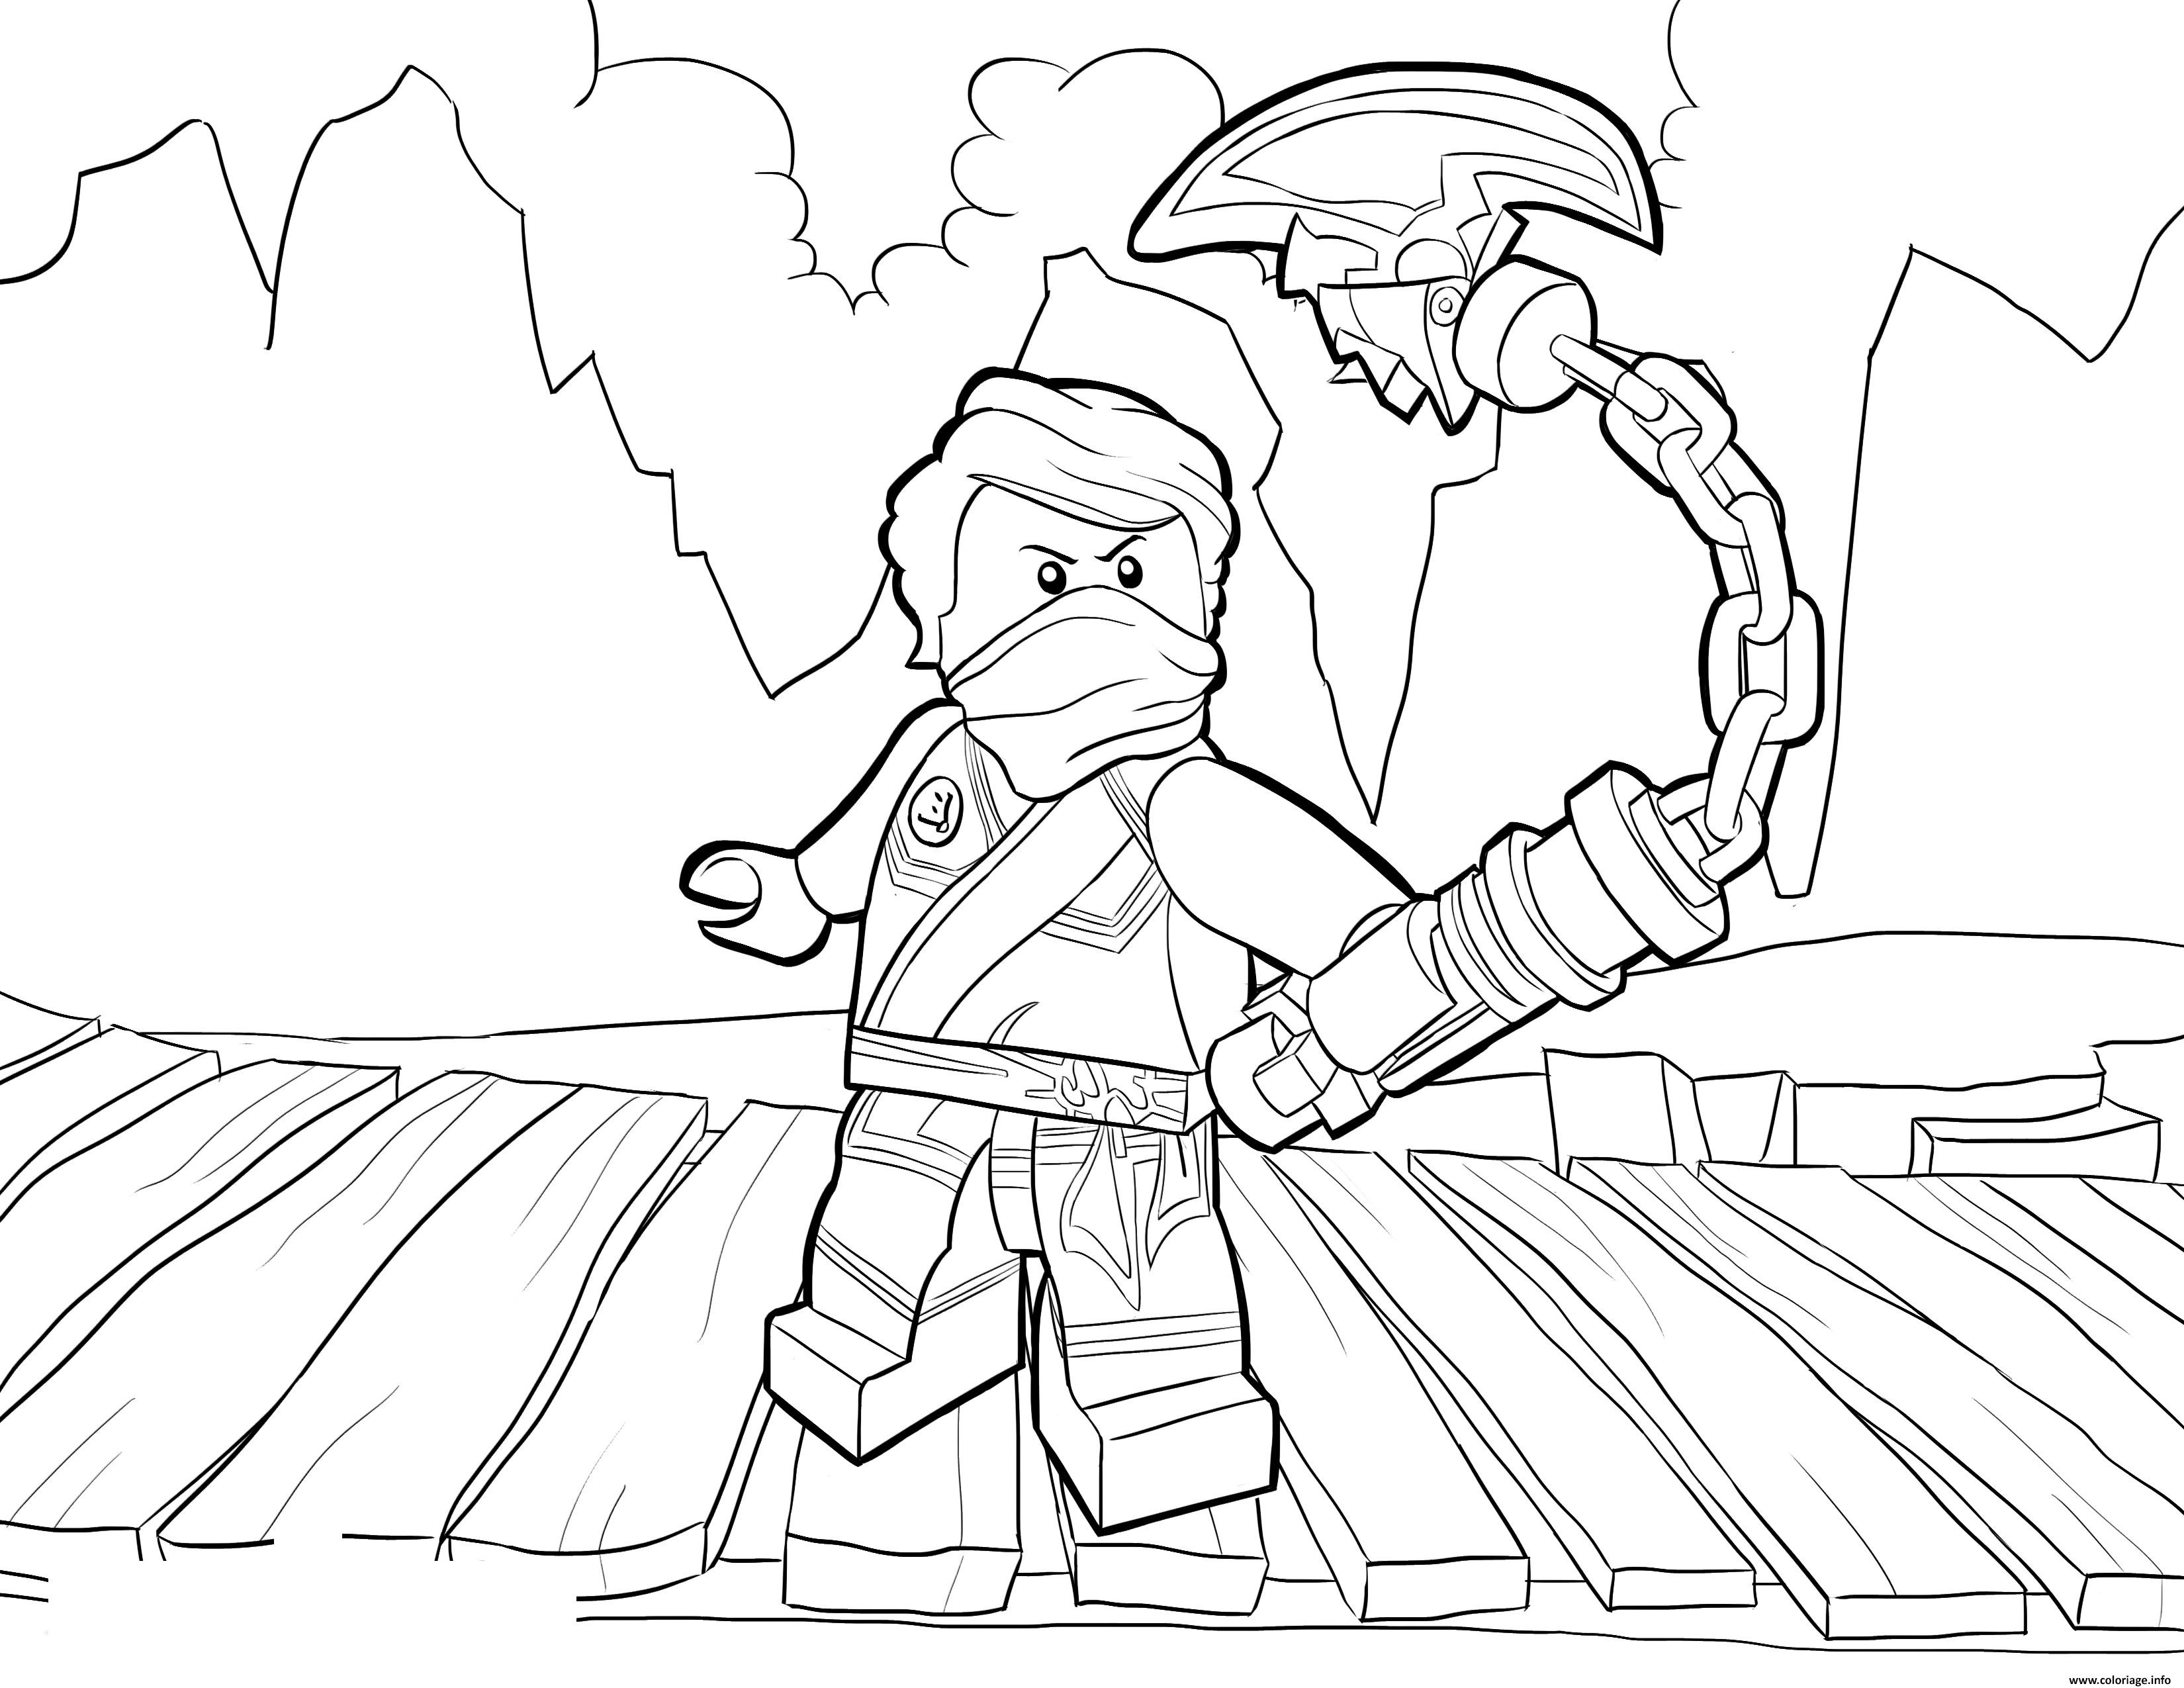 Coloriage LEGO Ninjago Lloyd Tournament Of Elements Dessin à Imprimer